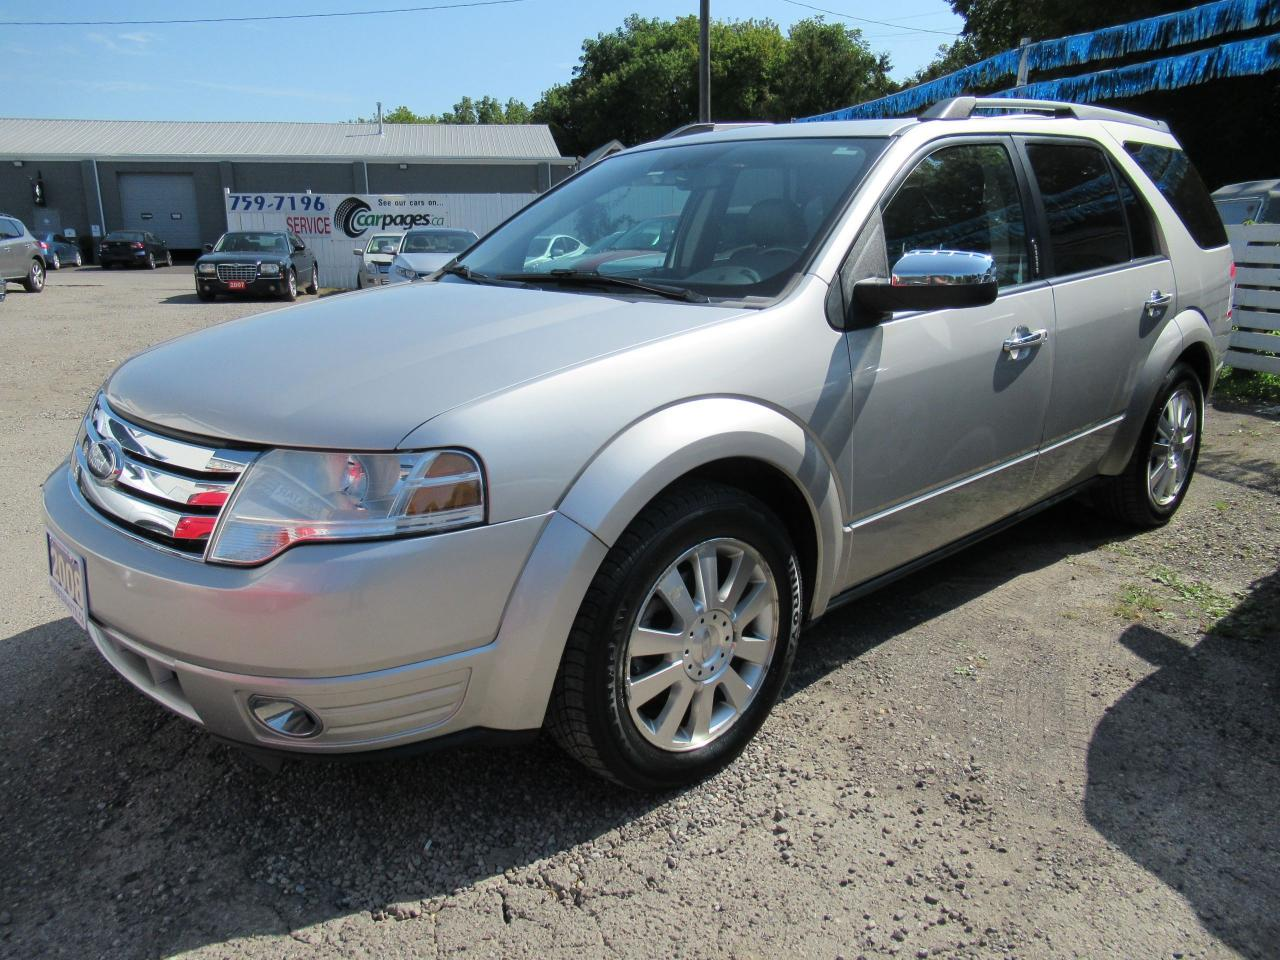 2008 Ford Taurus X Limited - Certified w/ 6 Month Warranty